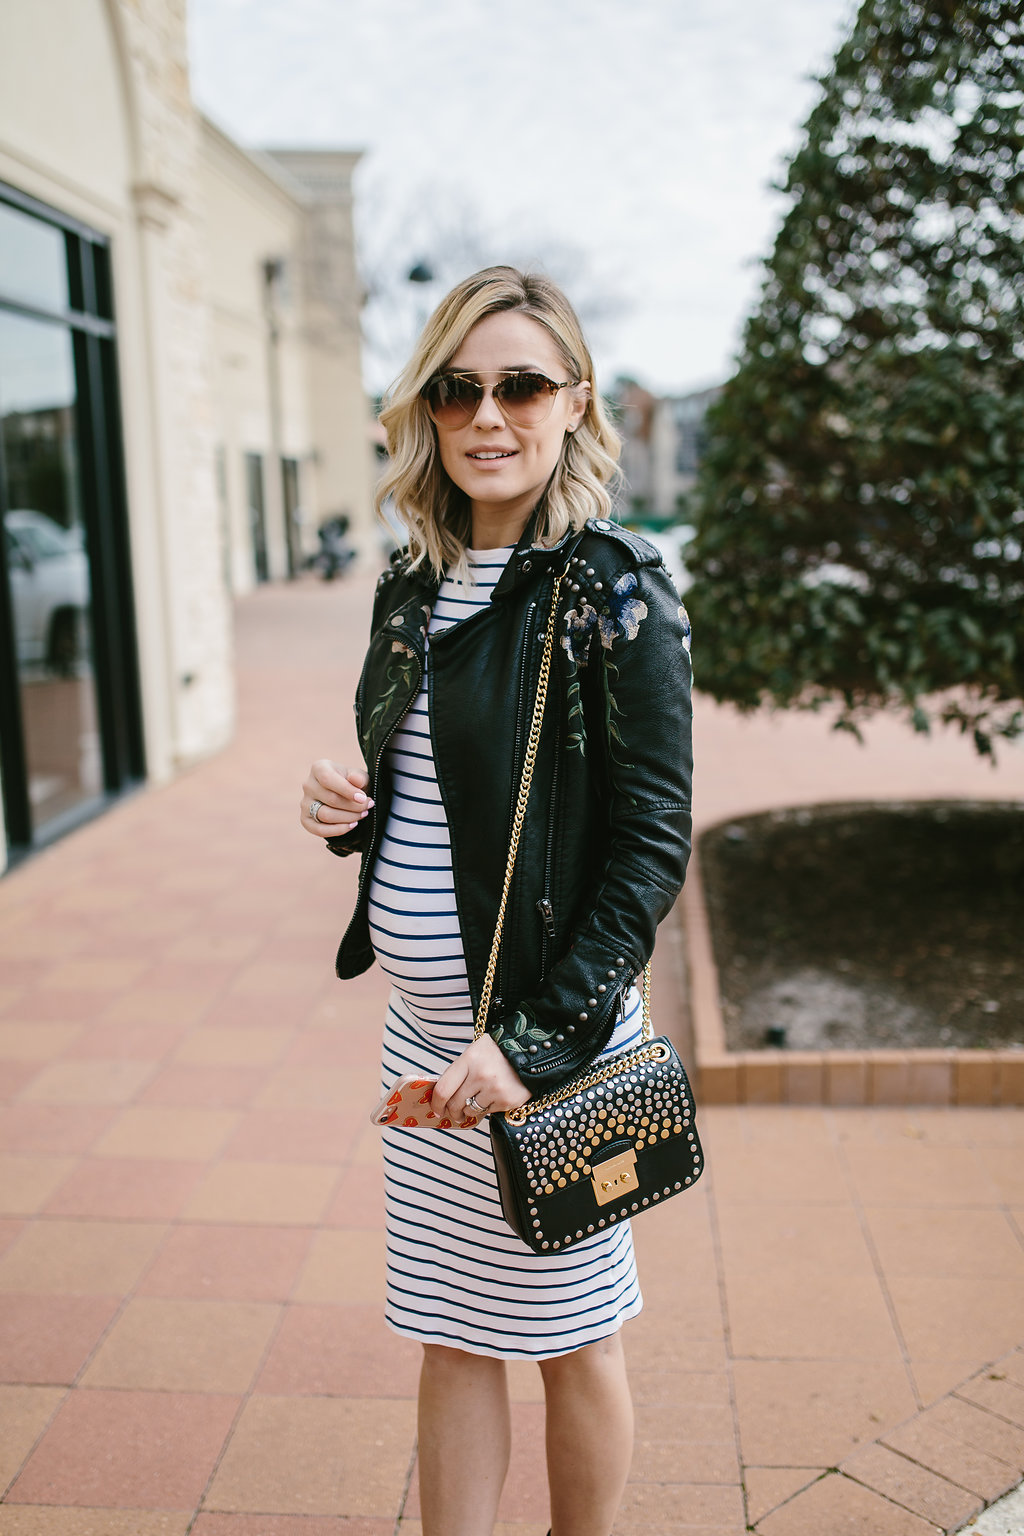 Houston fashion blogger Uptown WIth Elly Brown shares her top tips on how to feel and look good during the hardest 9 months in any woman's life- pregnancy!